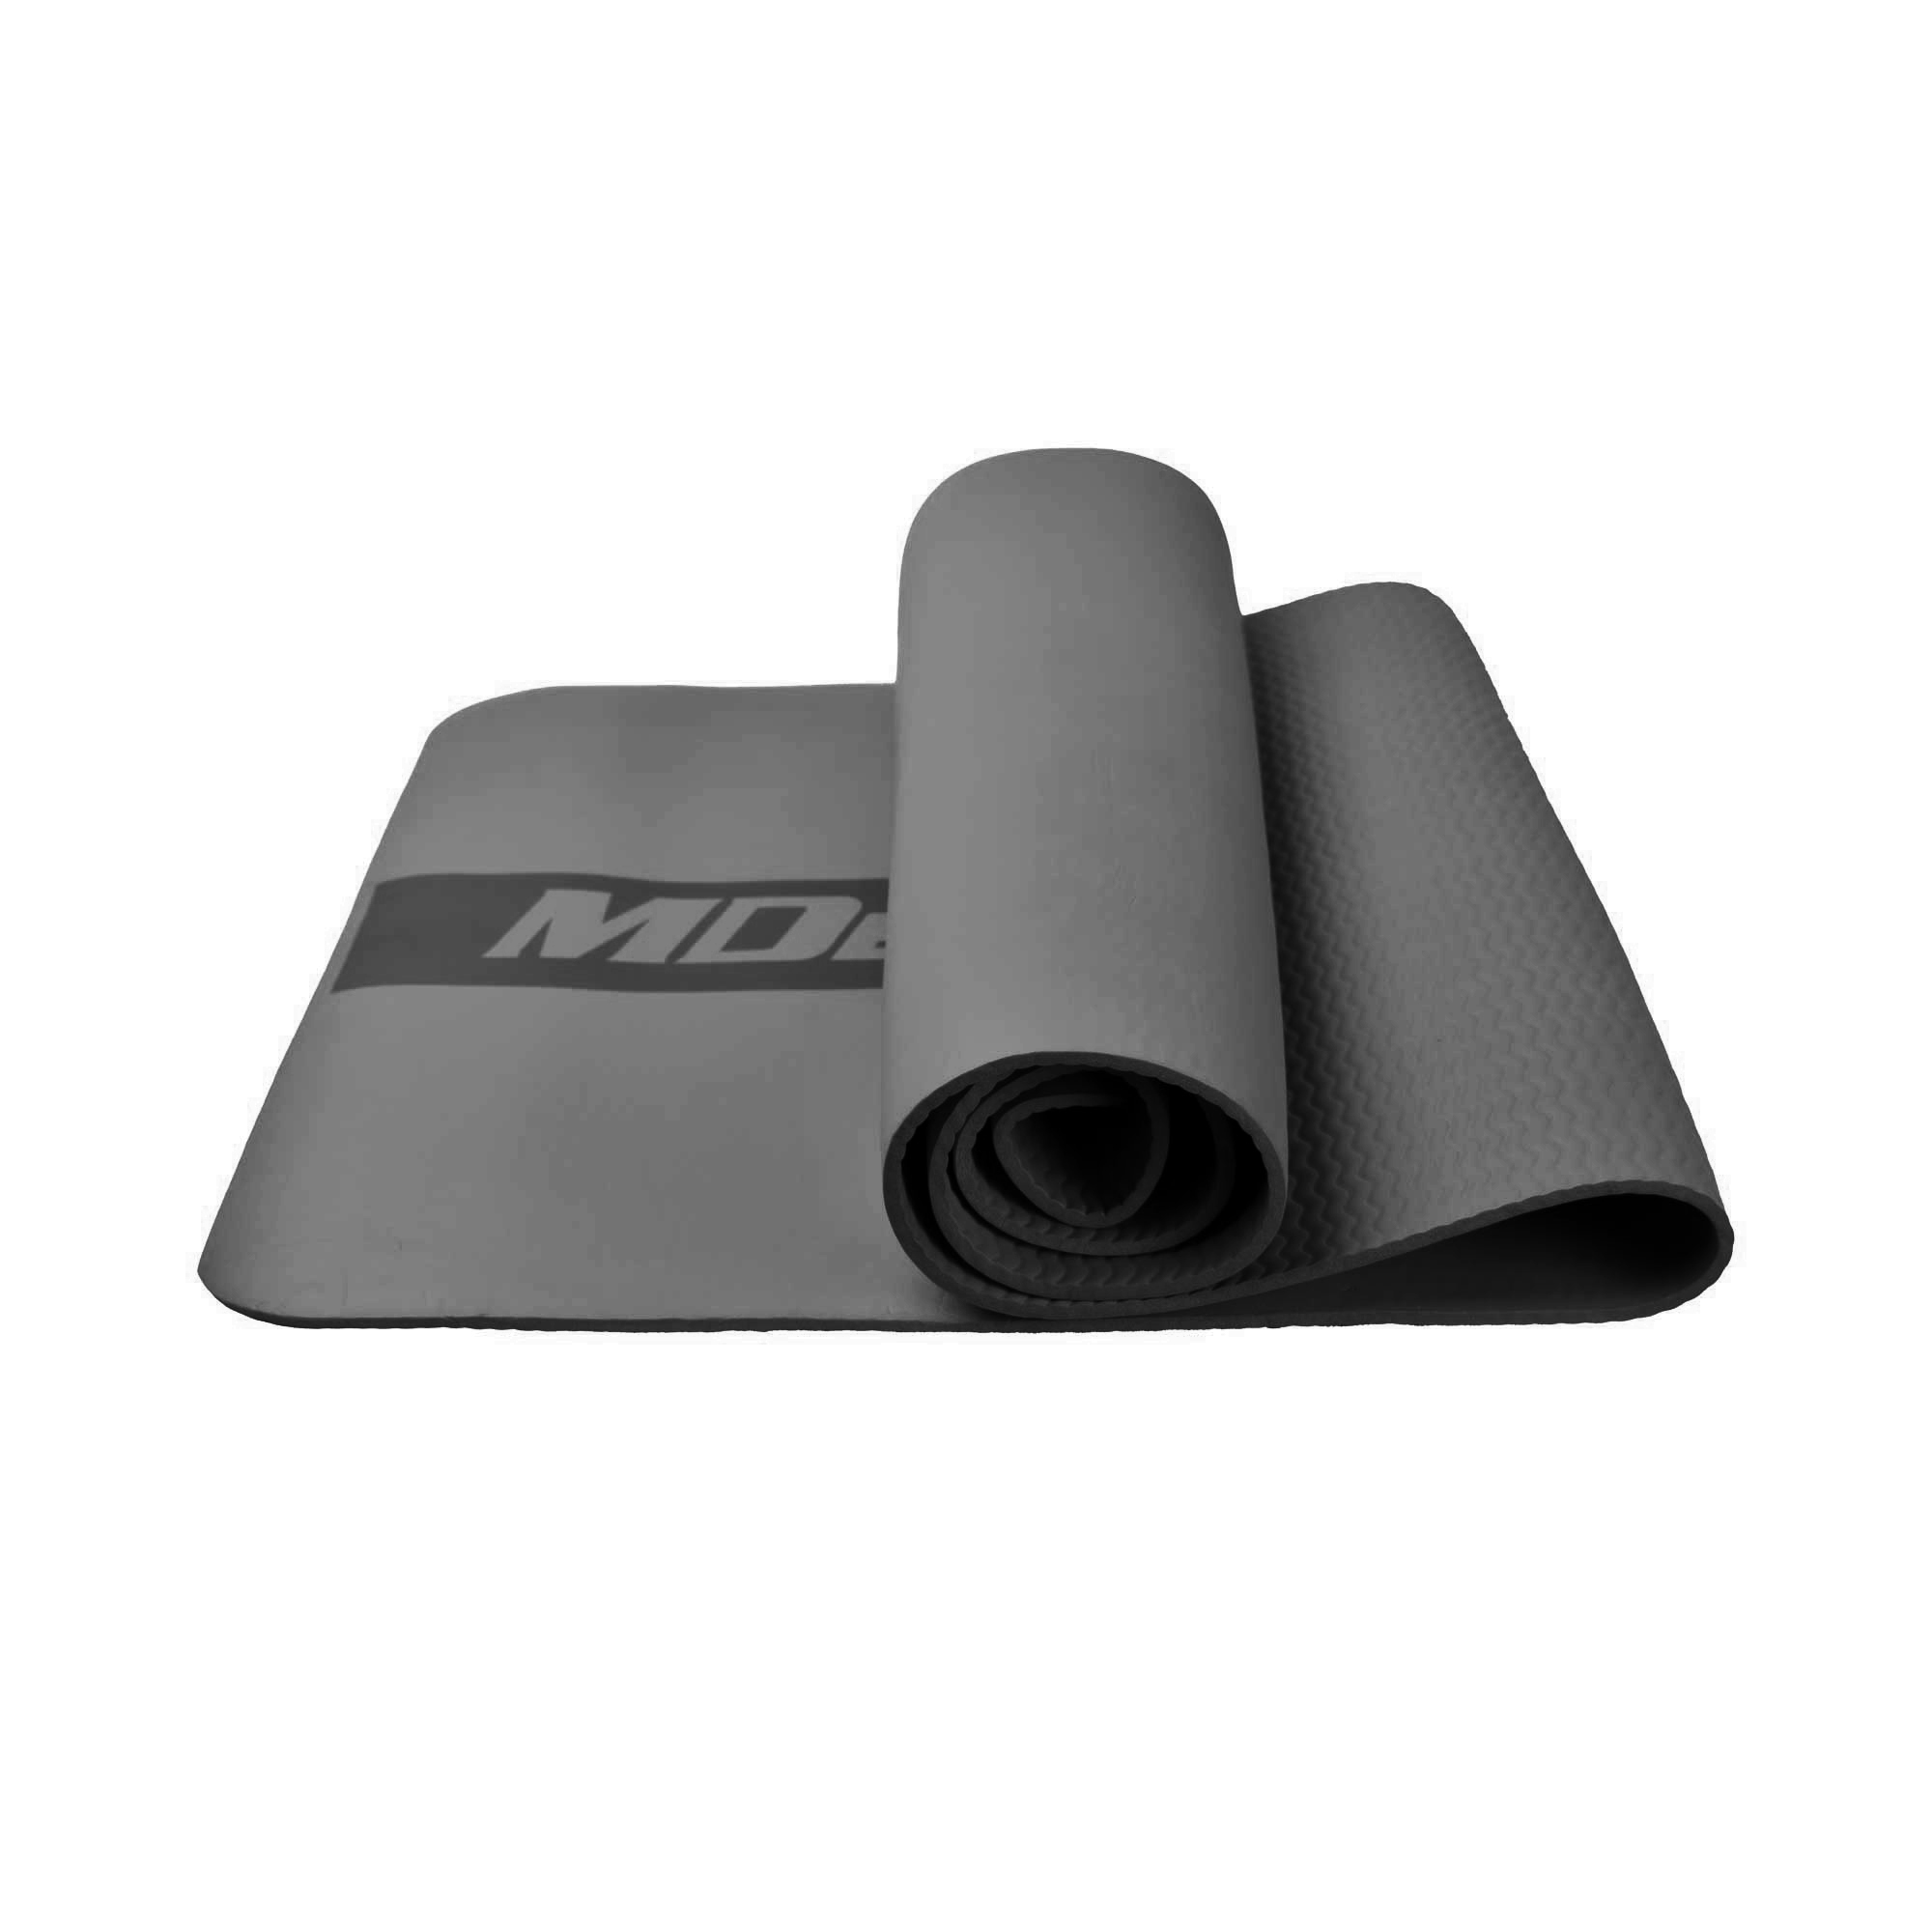 MDBUDDY MD9041 HIGH ELASTIC RUBBER PILATES YOGA MAT 6MM THICKNESS – GRAY